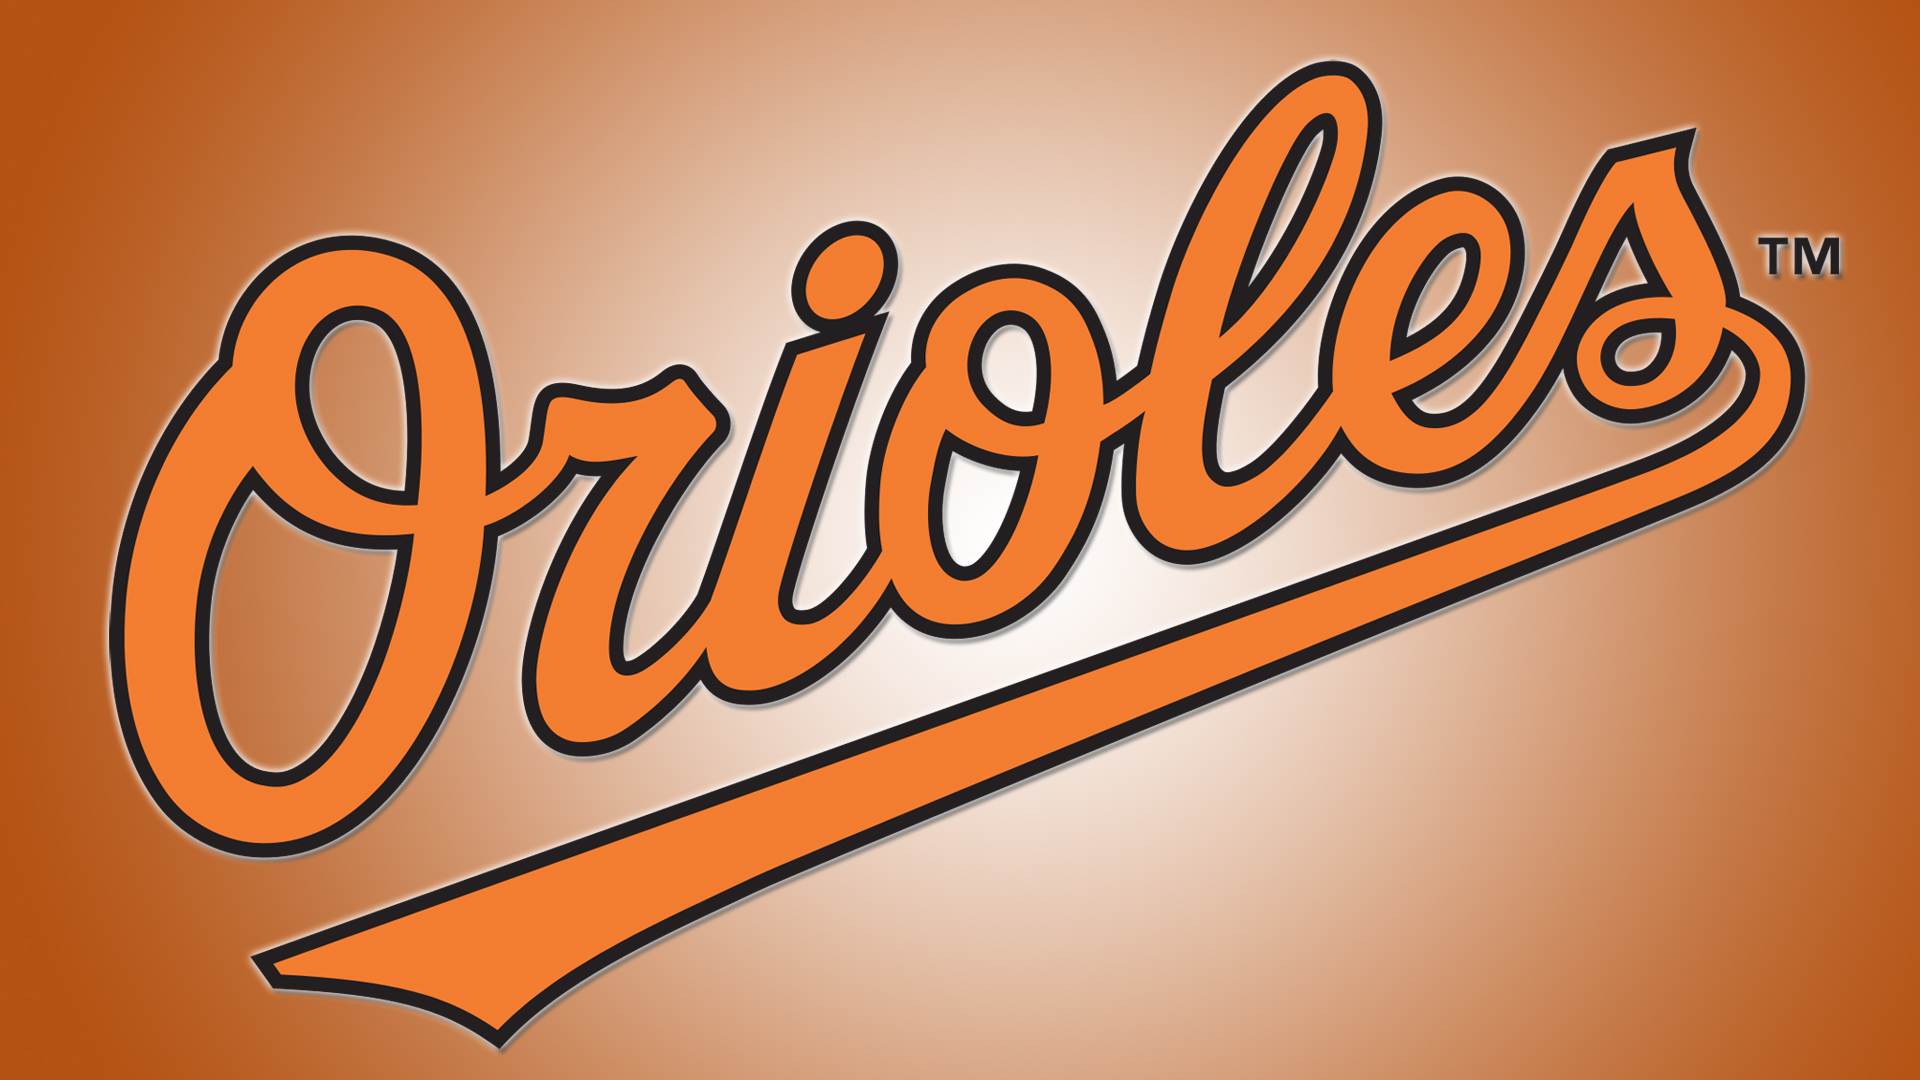 Baltimore Orioles  1920 1080   Ultra High Definition HD Wallpaper